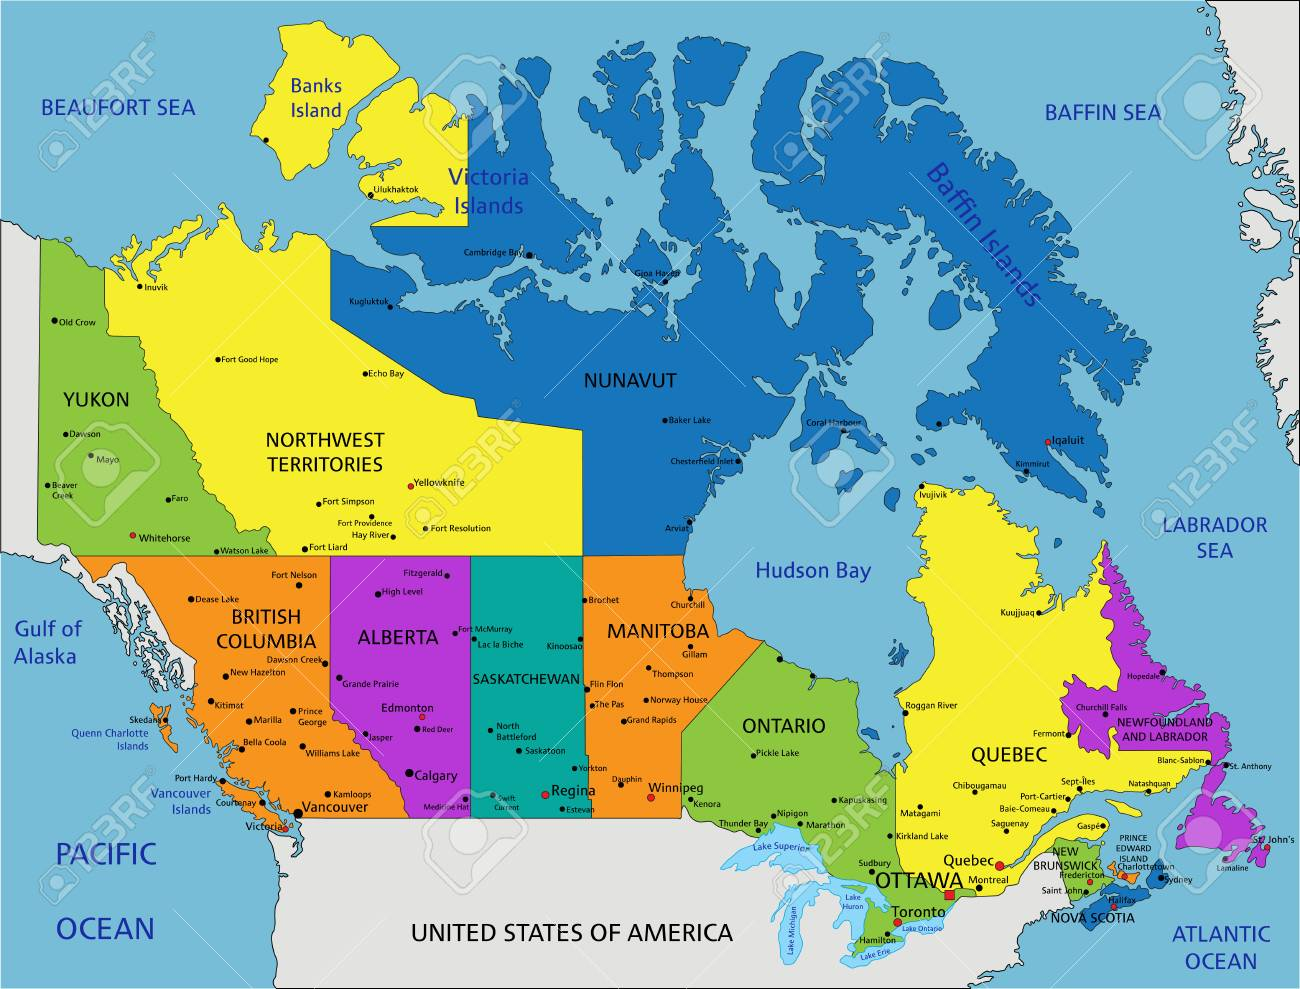 Map Of Canada With Oceans Labeled Colorful Canada Political Map With Clearly Labeled, Separated